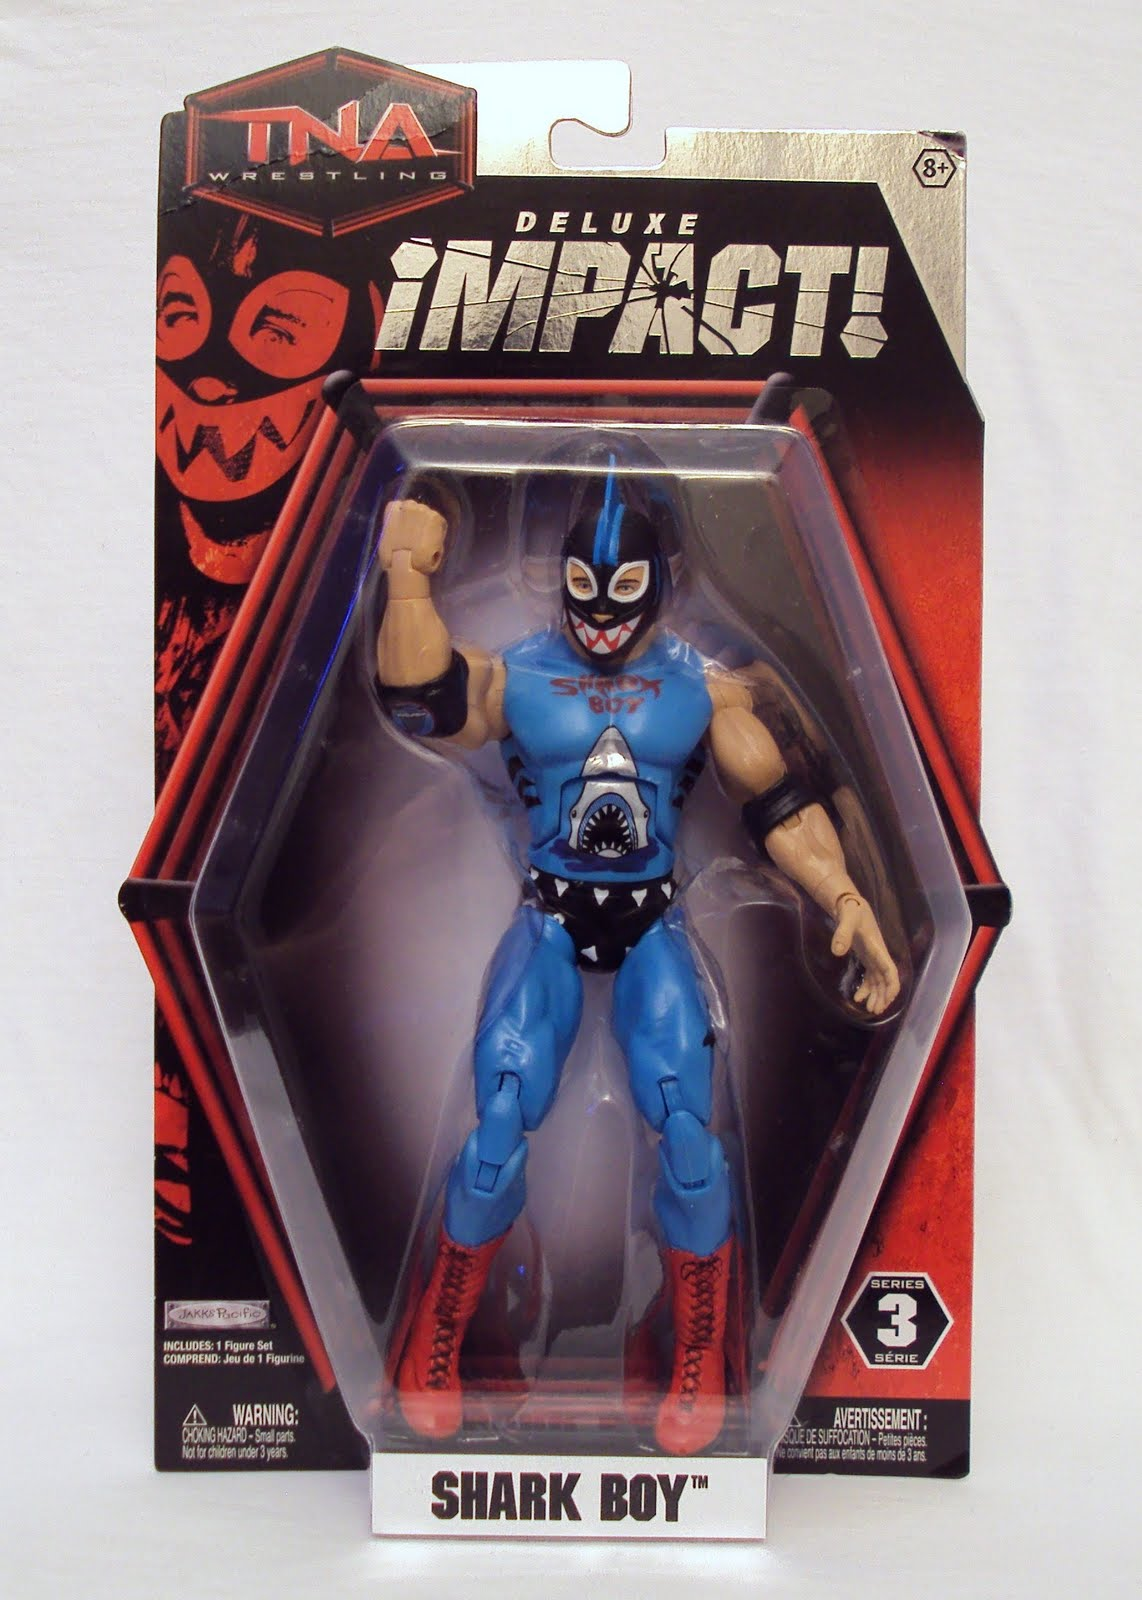 Toy Boy 3b's Toy Hive: Tna Deluxe Impact!, Shark Boy - Review